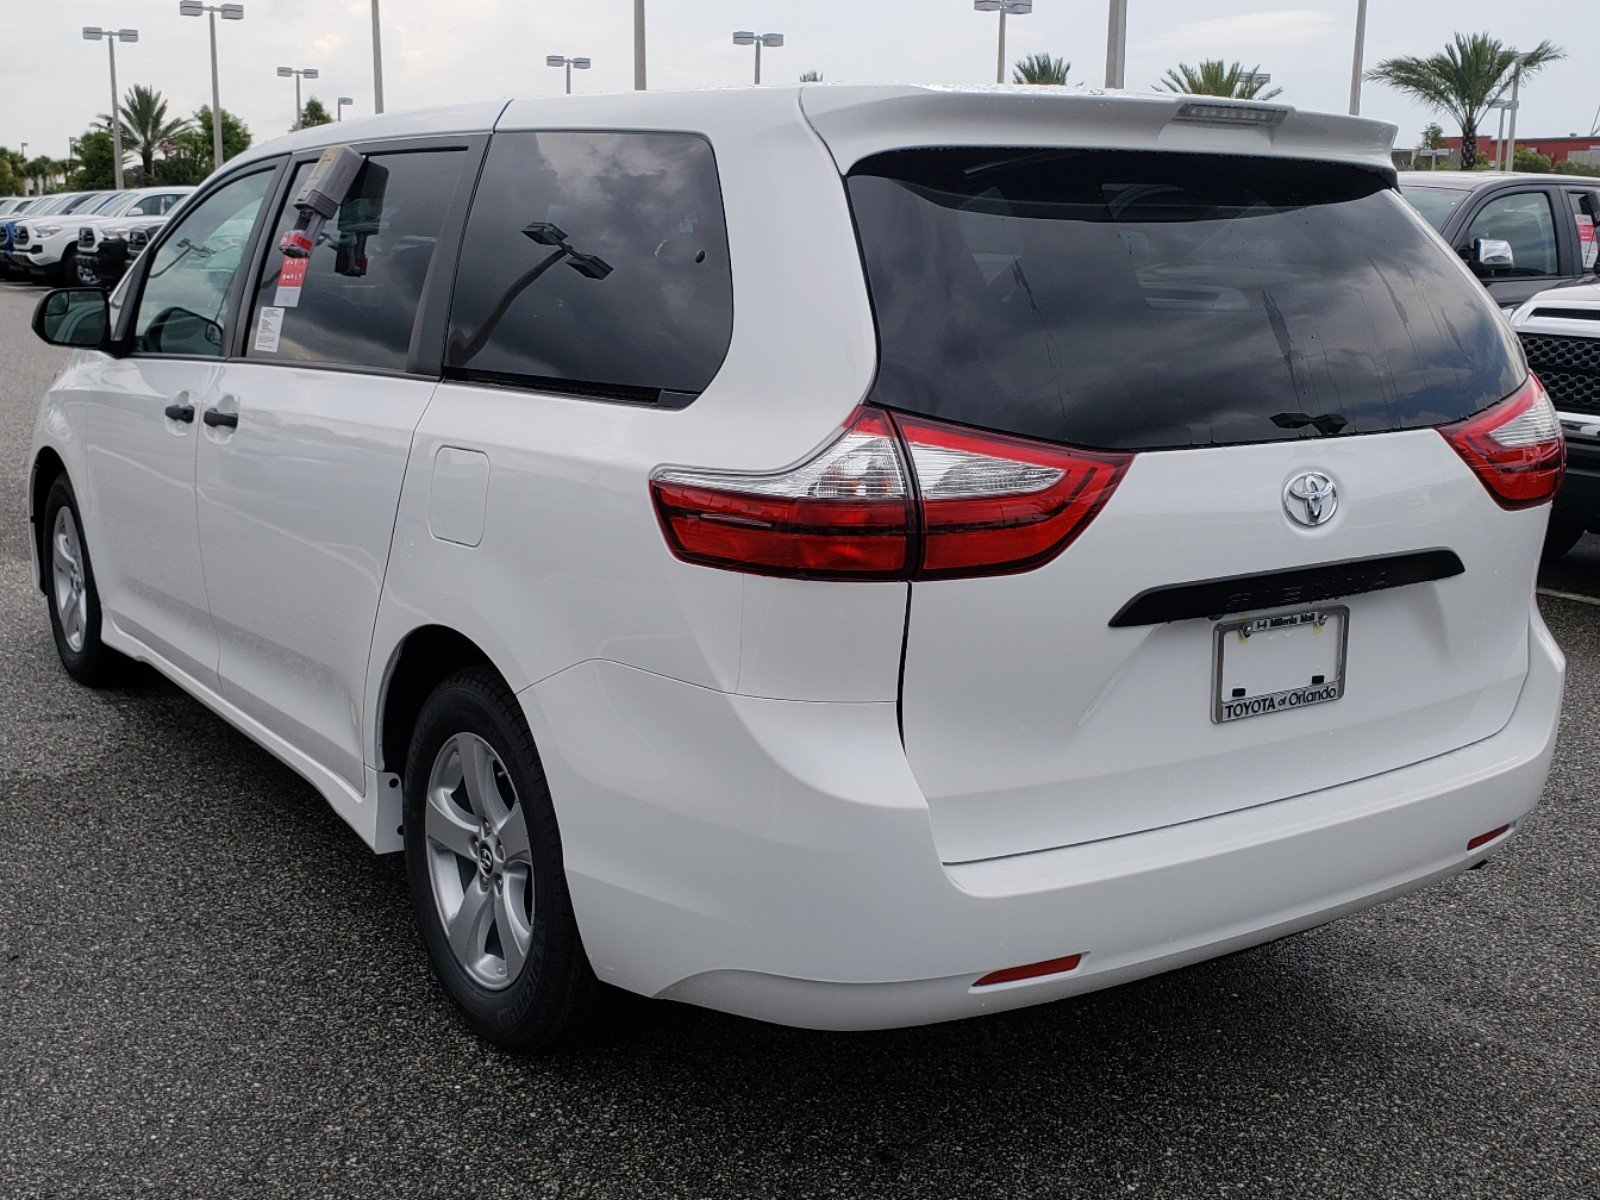 Toyota Sienna 2010-2018 Owners Manual: Operating the audio system